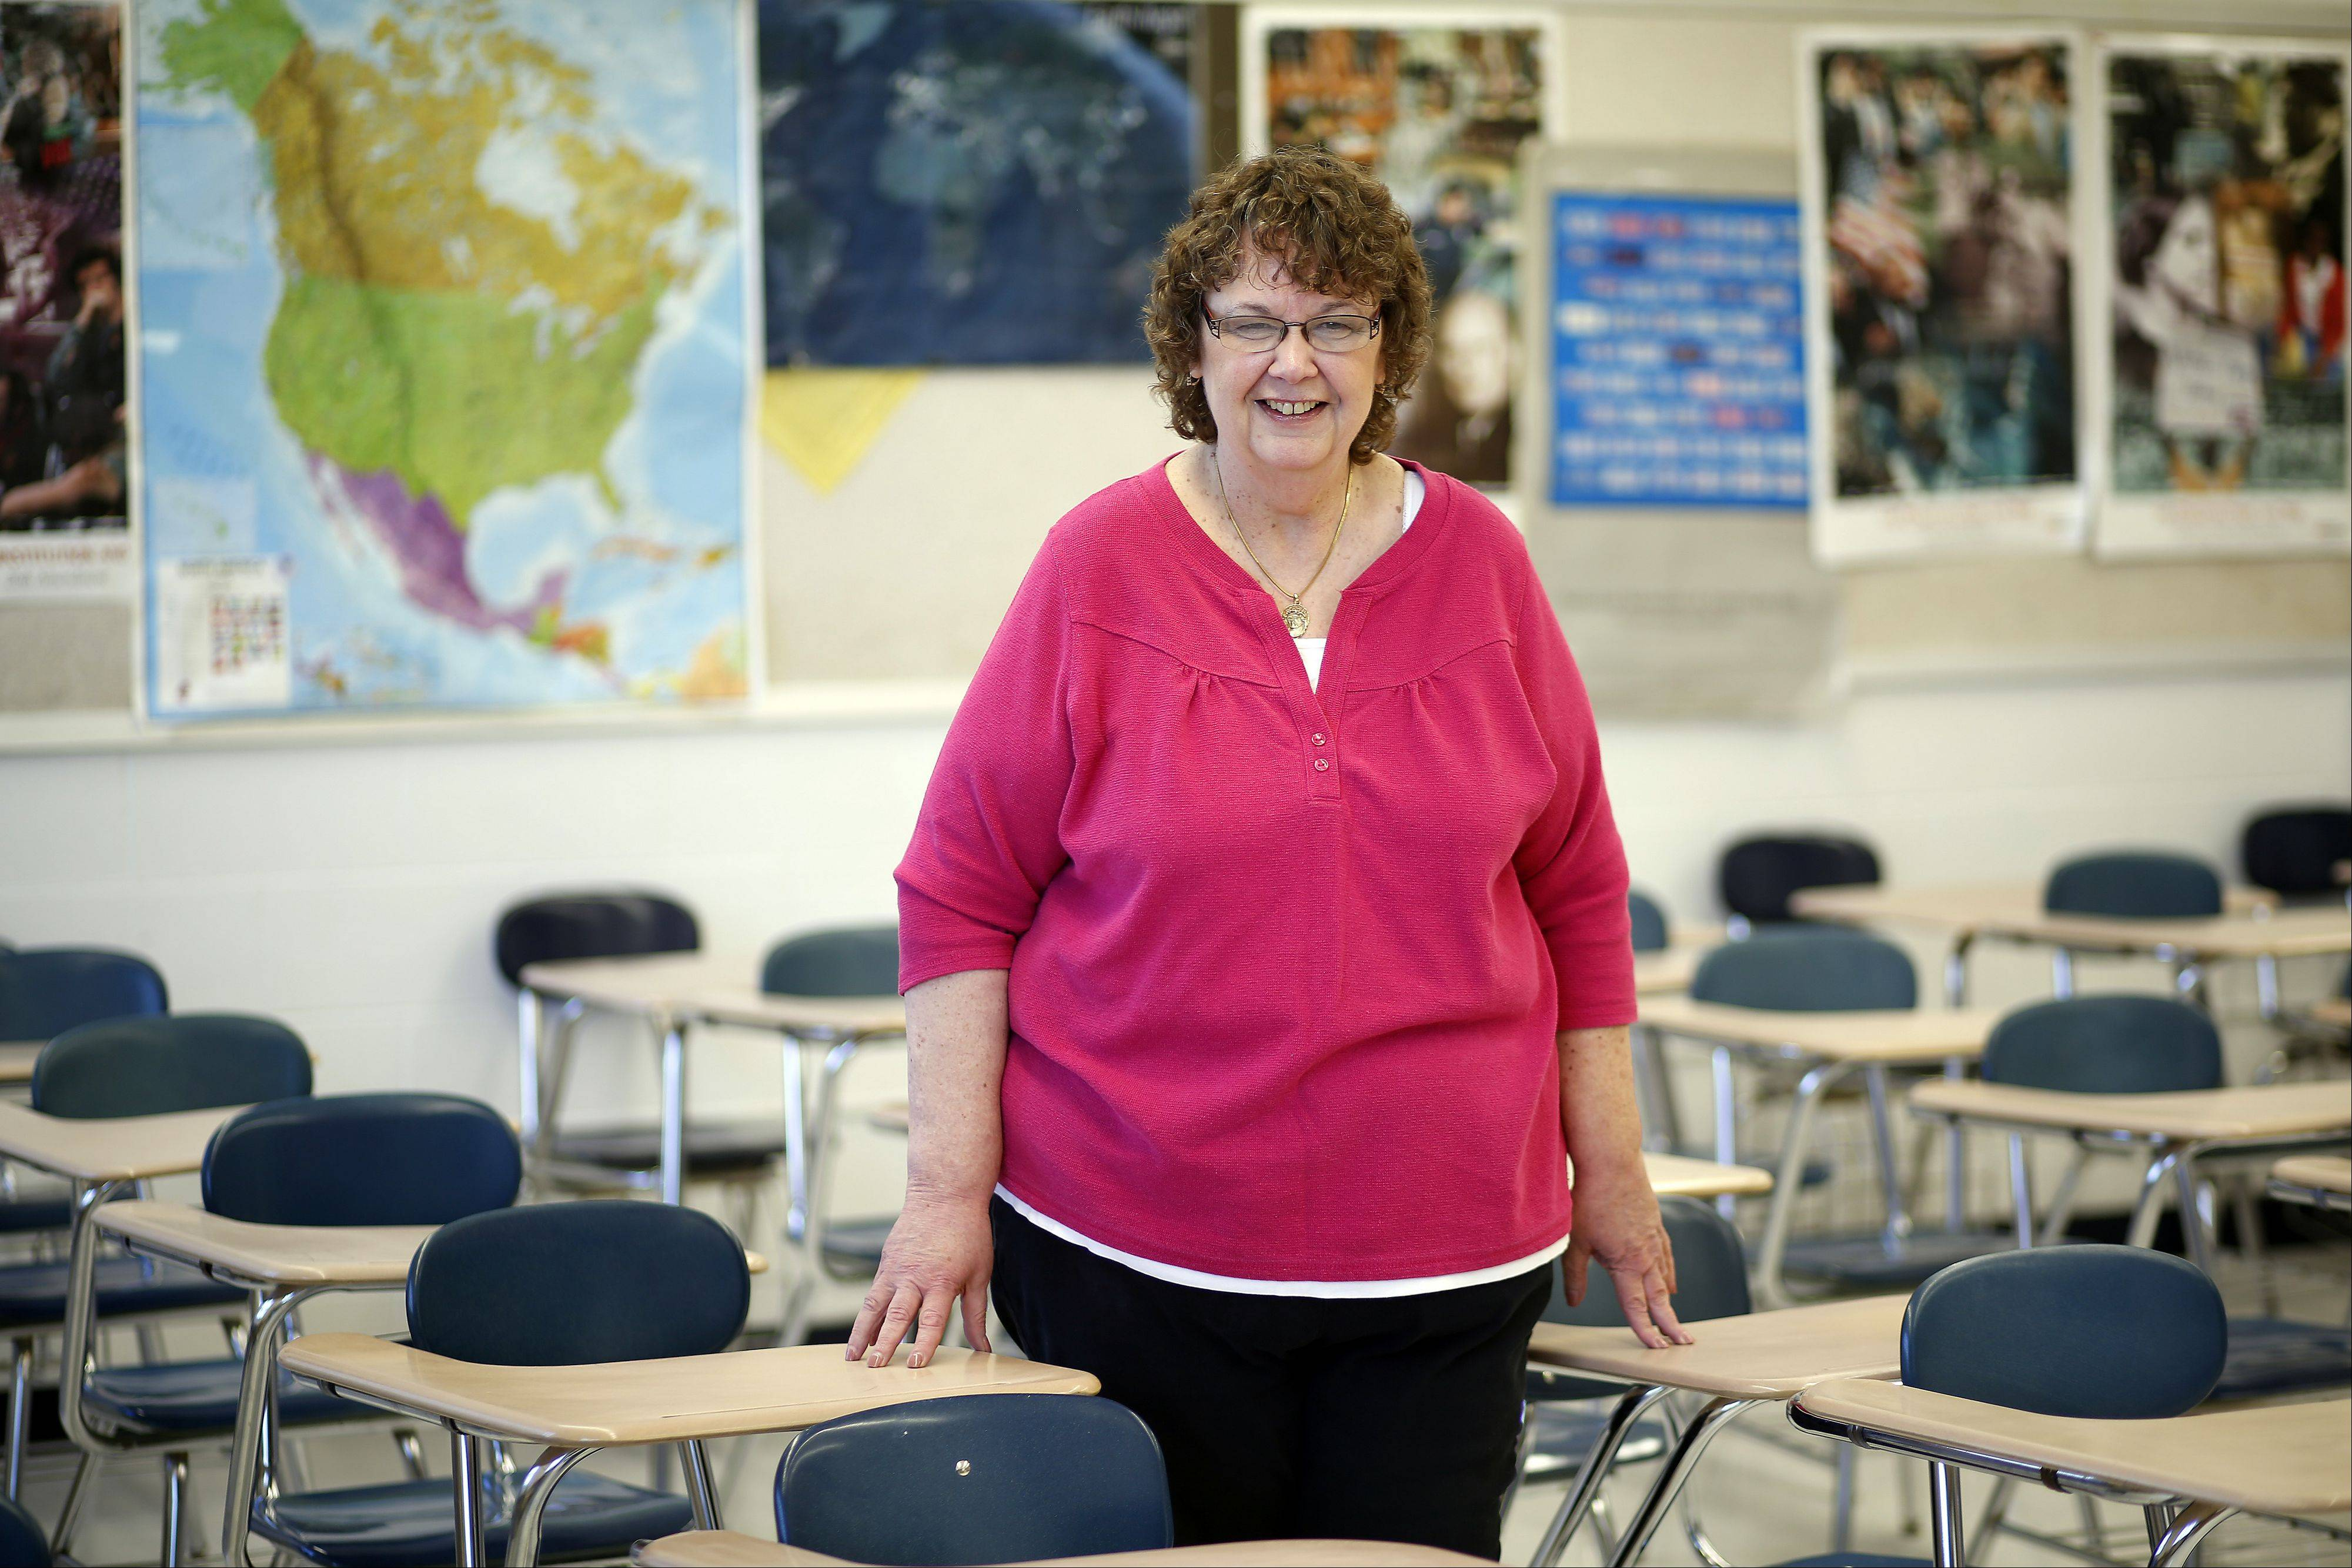 Karen Leinen is a special-education teacher at Dundee-Crown High School in Carpentersville. She co-teaches American government with Matt Michalski in the classroom pictured here and also serves students in smaller resource rooms.